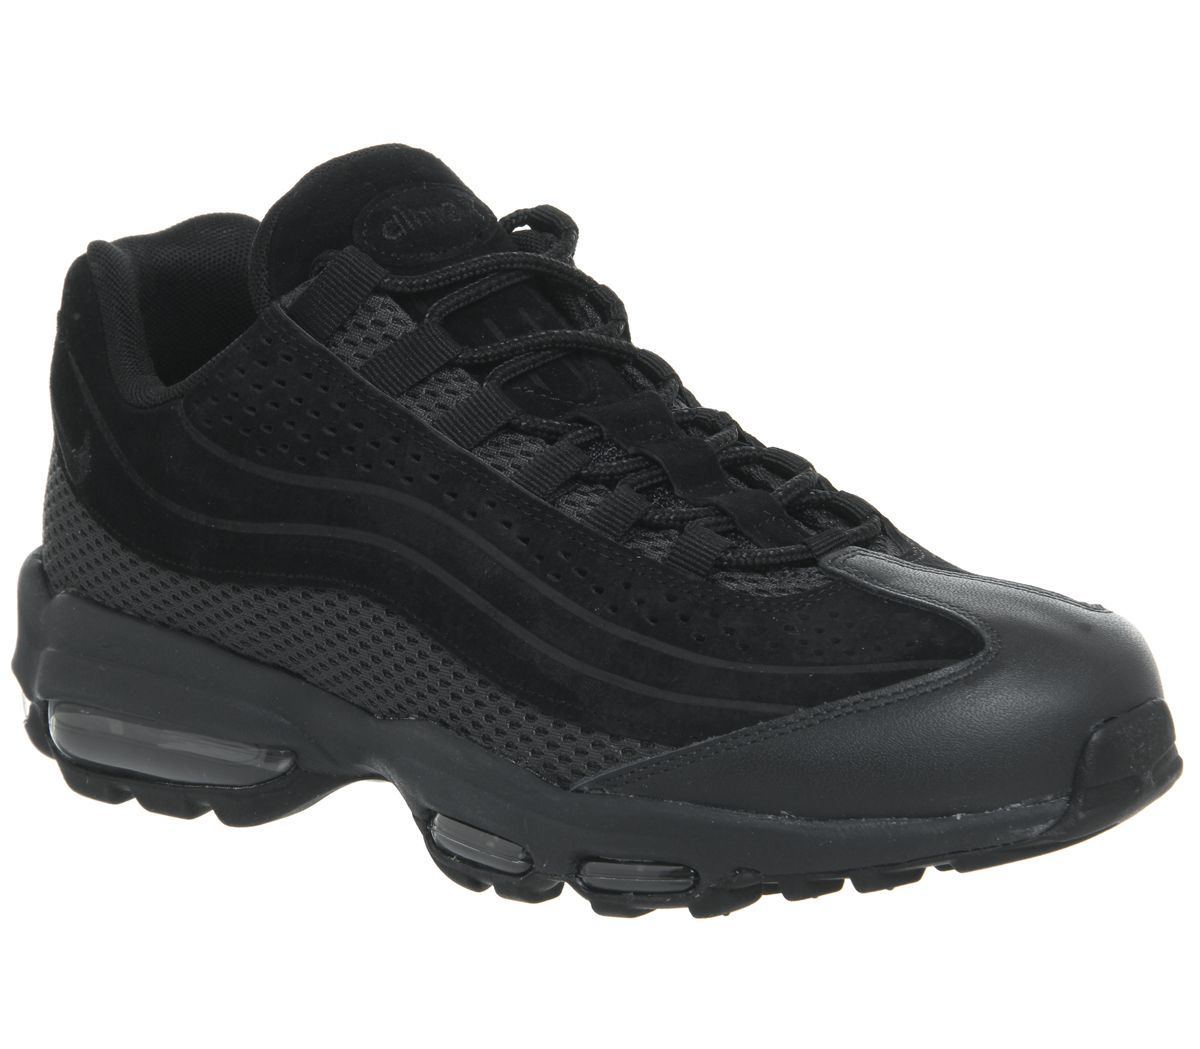 promo code d3be3 d0b04 Nike Air Max 95 Ultra Trainers Black - His trainers